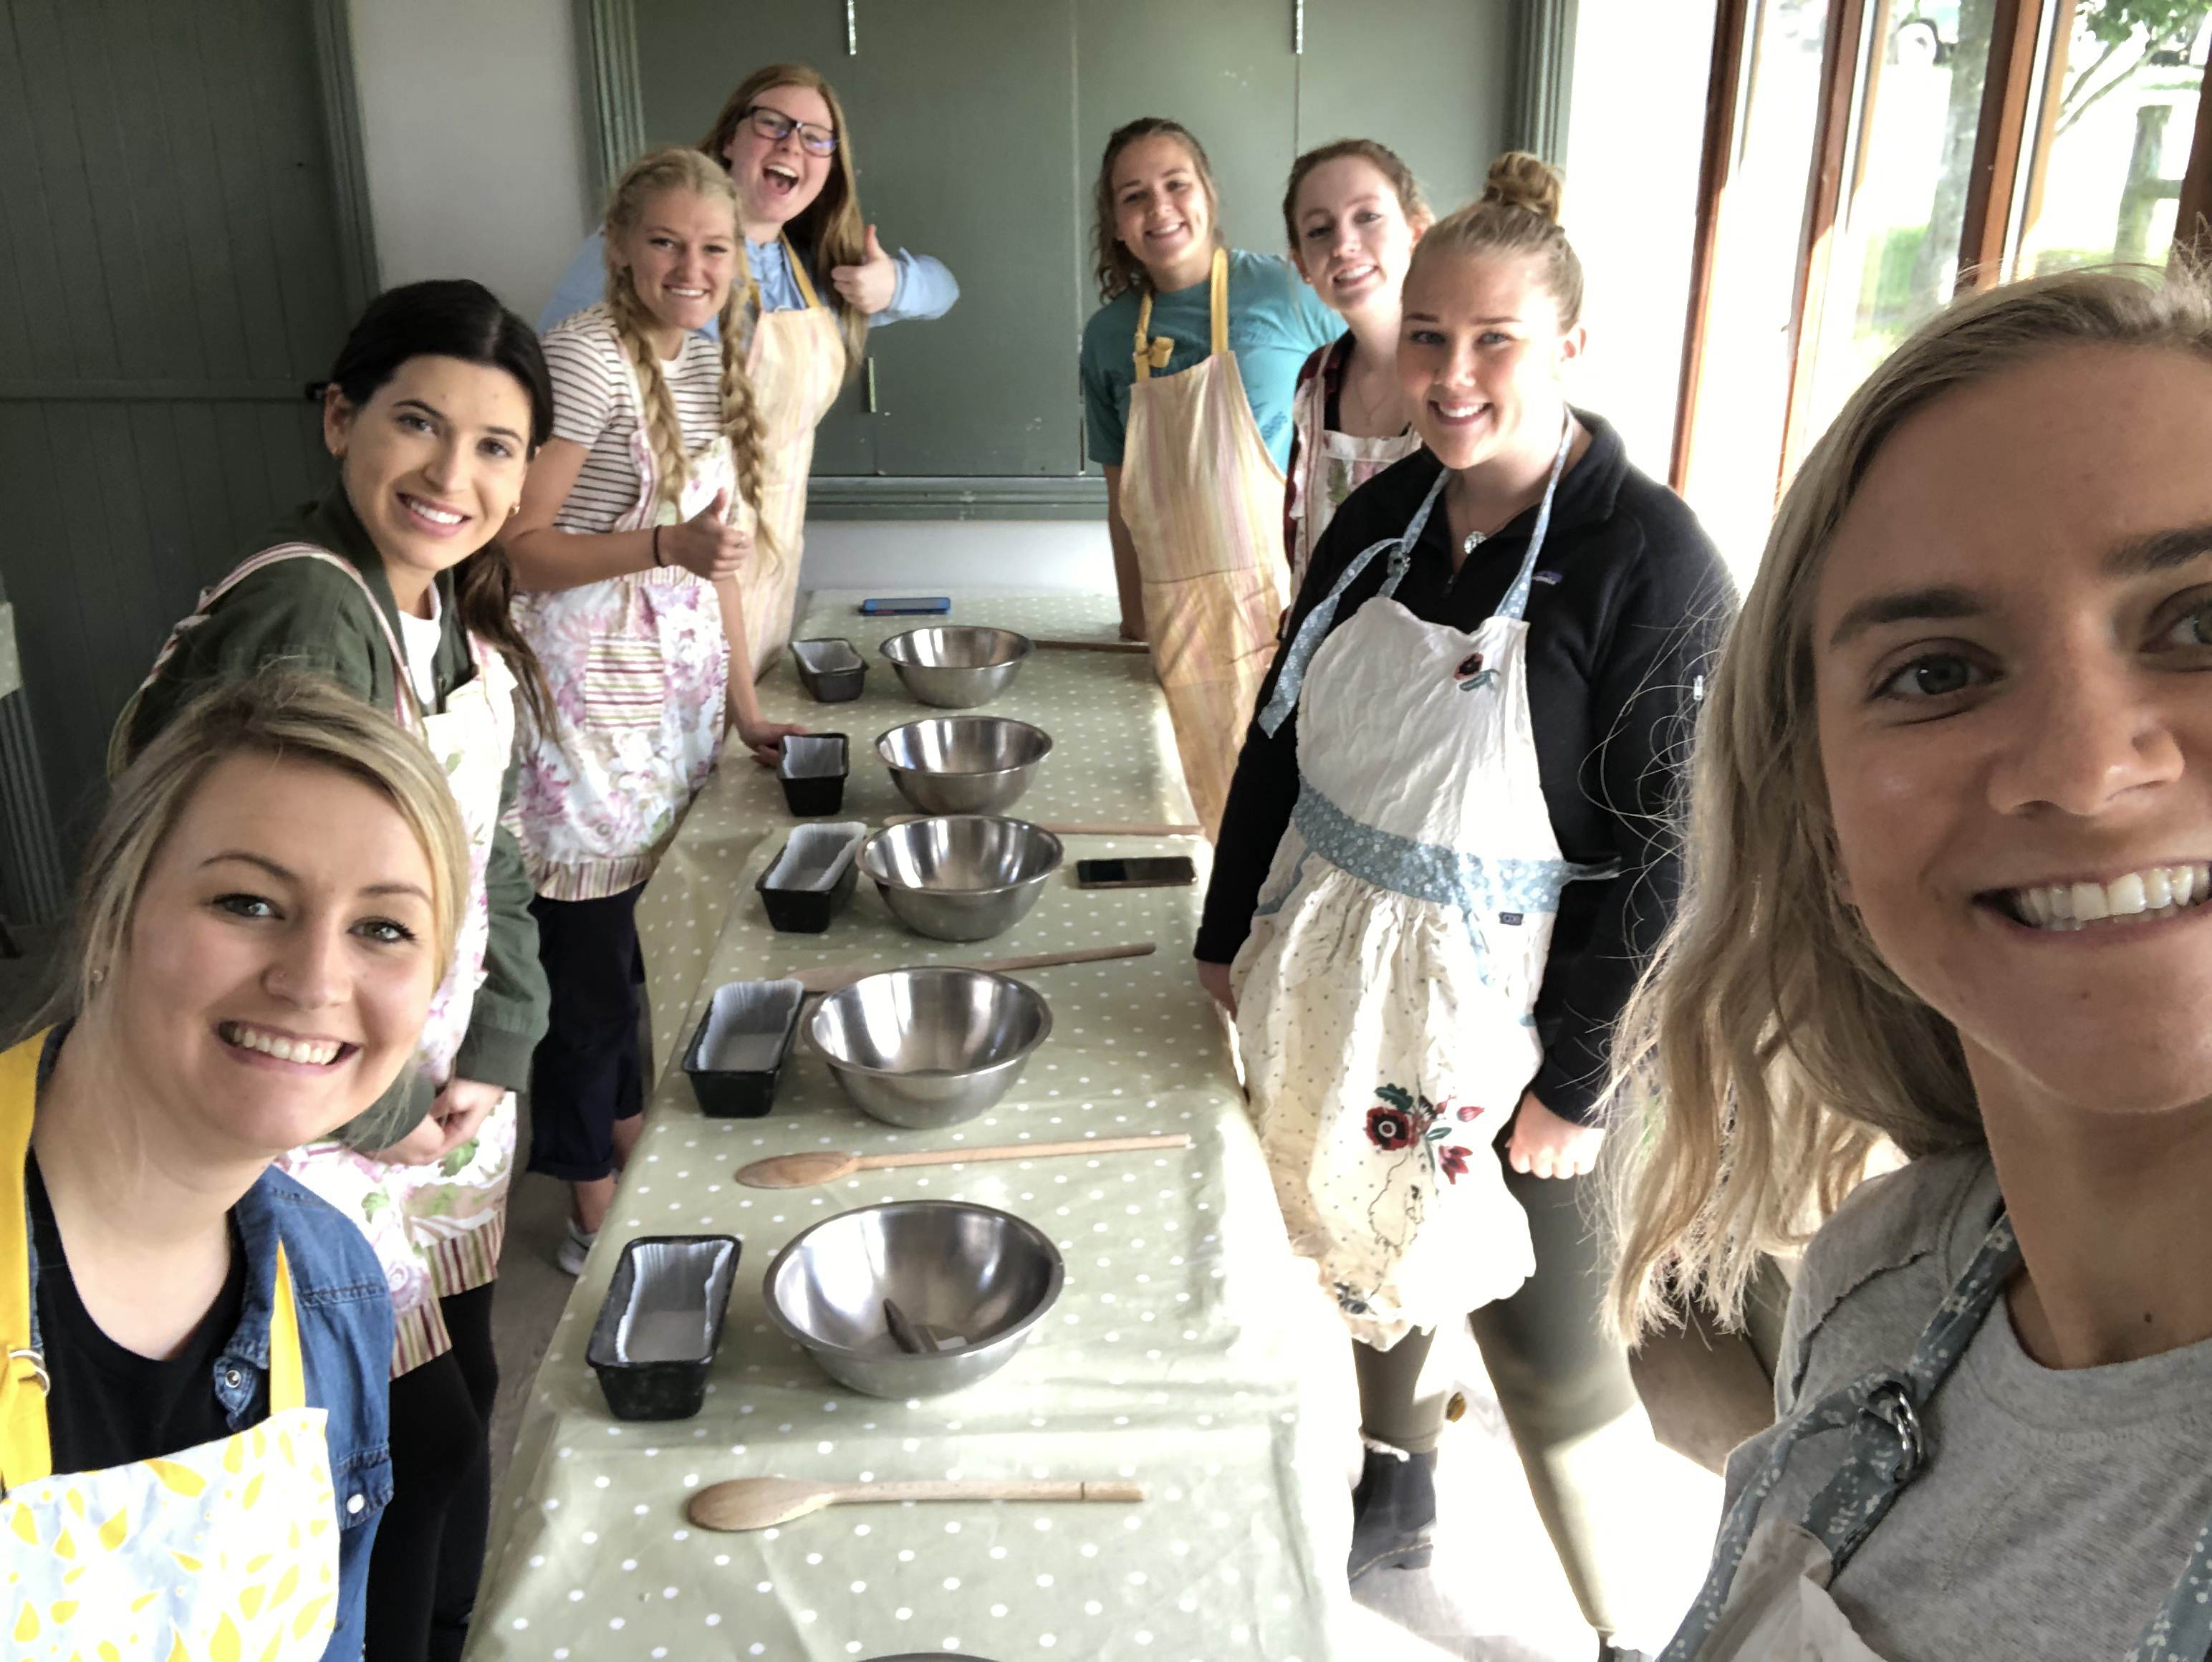 Students posing next to a table while they learn how to make bread